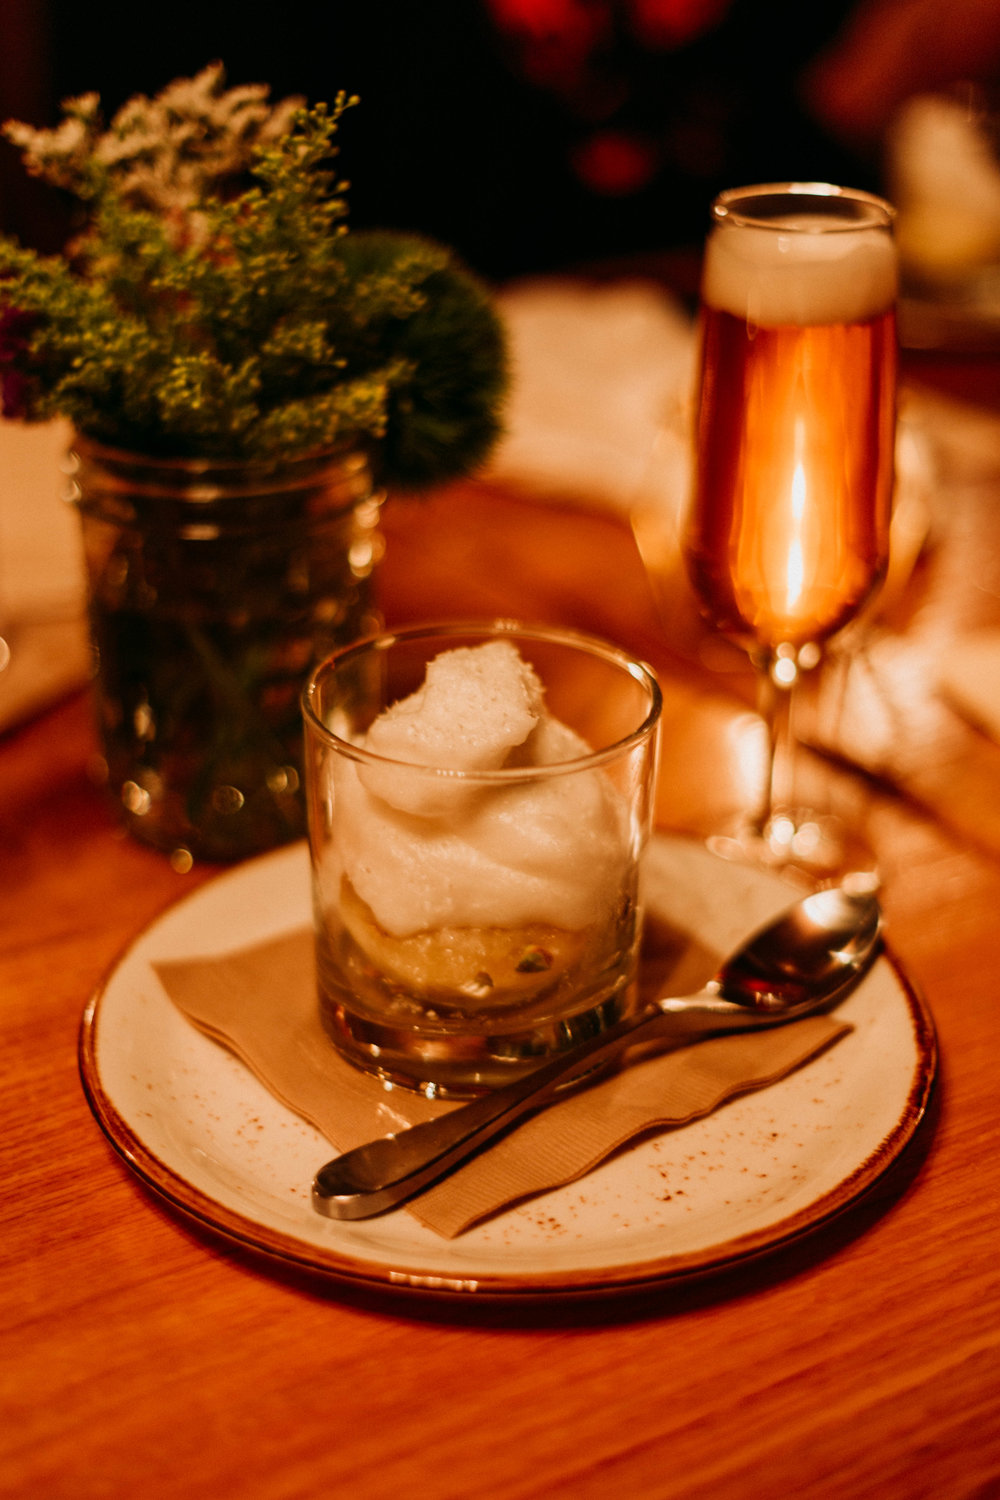 The sixth and final course - Roasted Apples topped with champagne foam, paired with Barley's Champagne Ale.